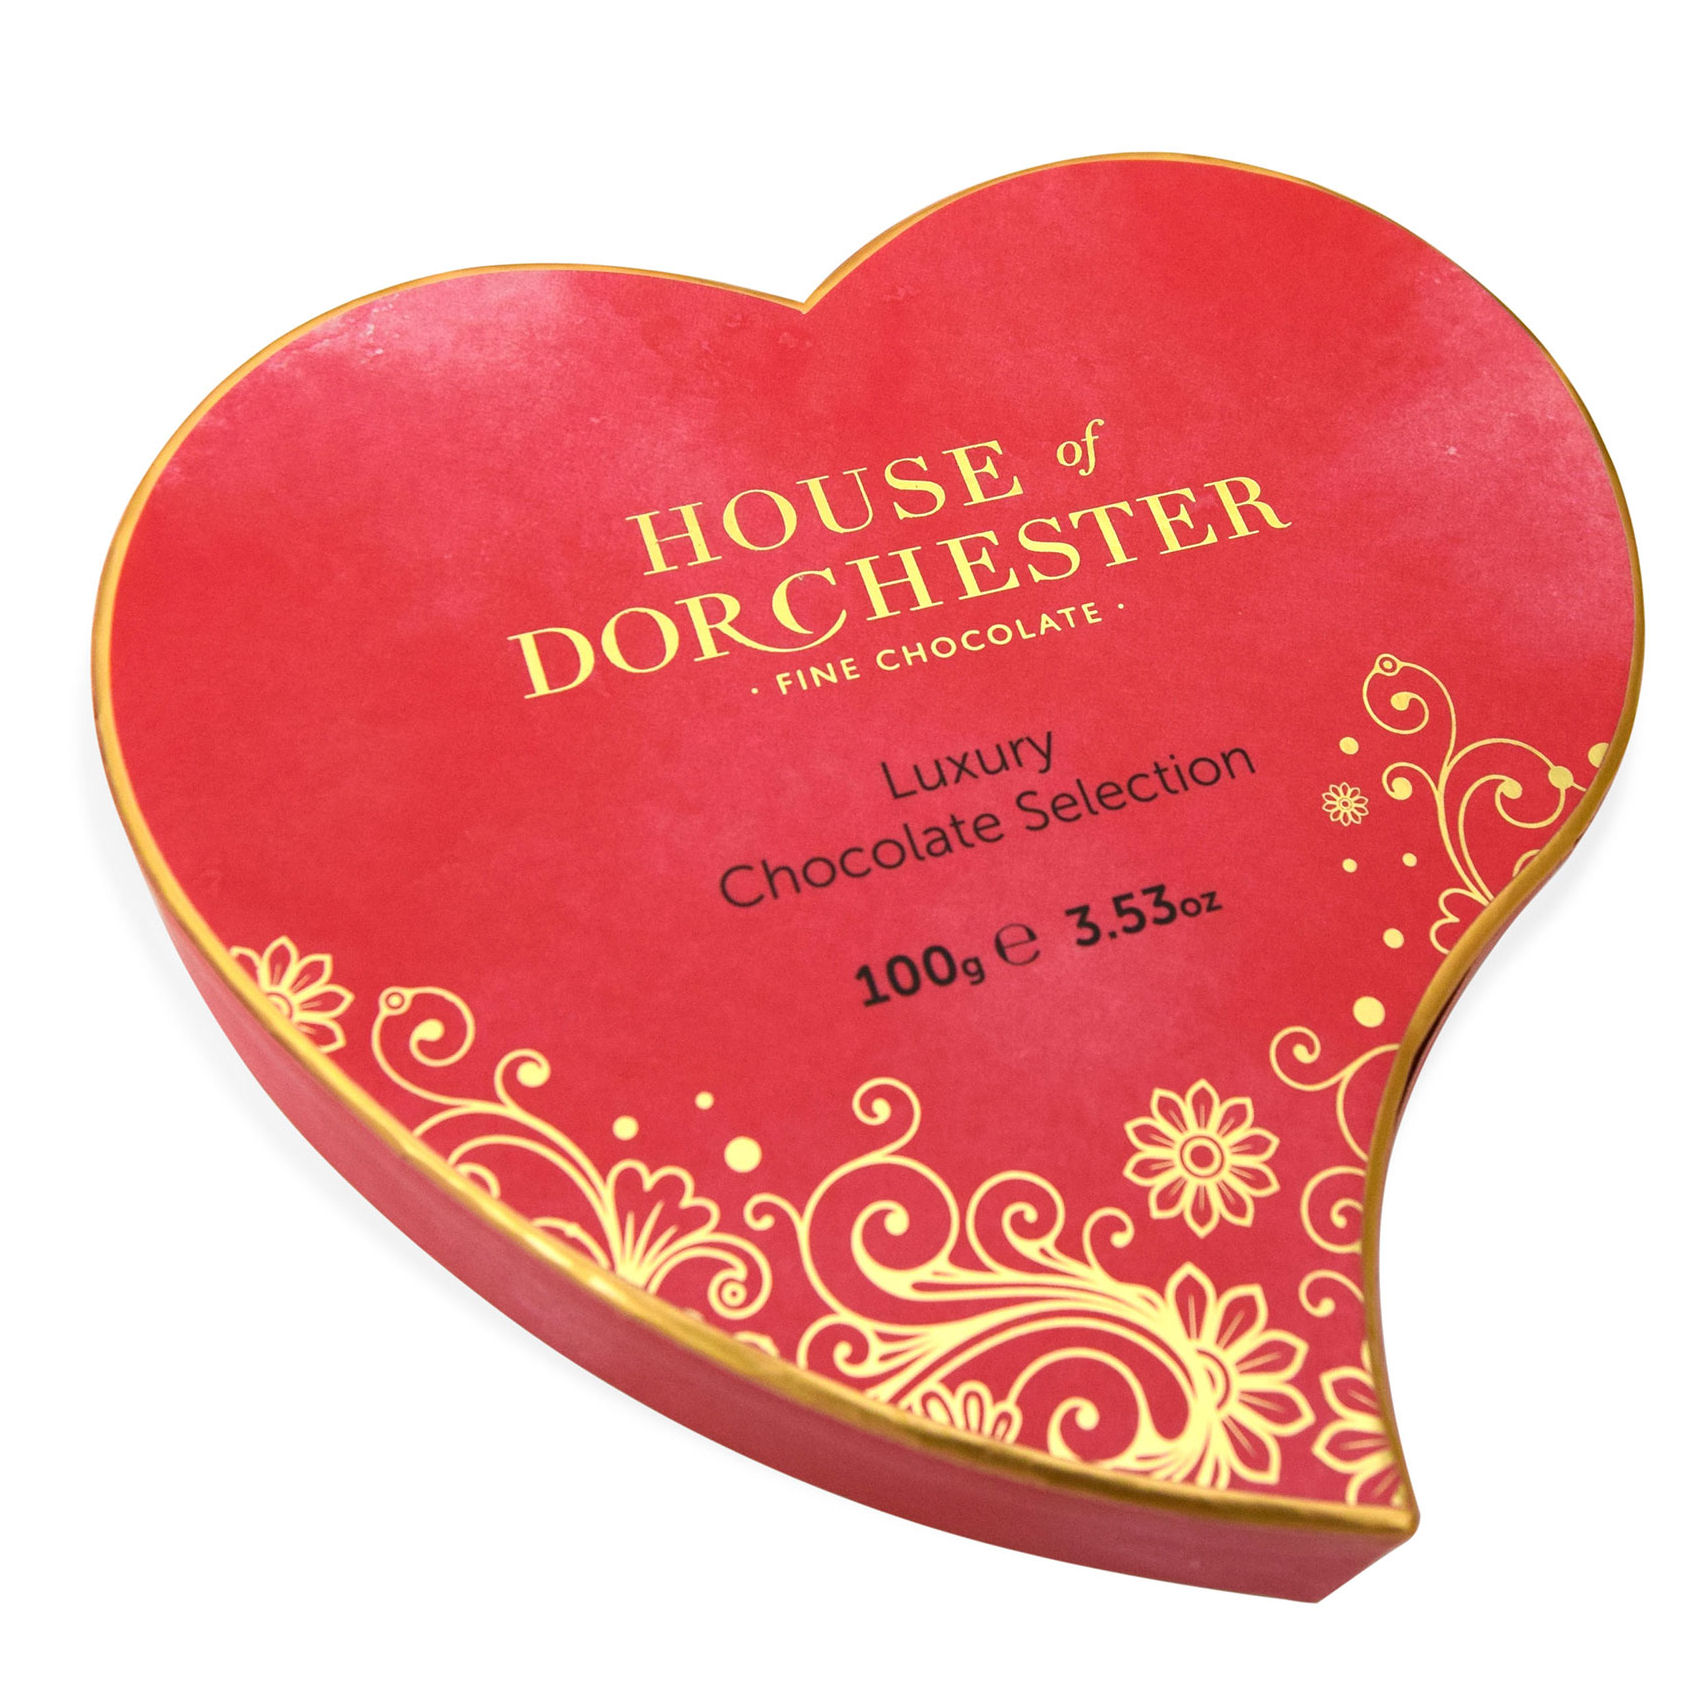 The House of Dorchester Heart Box Luxury Chocolates 100g